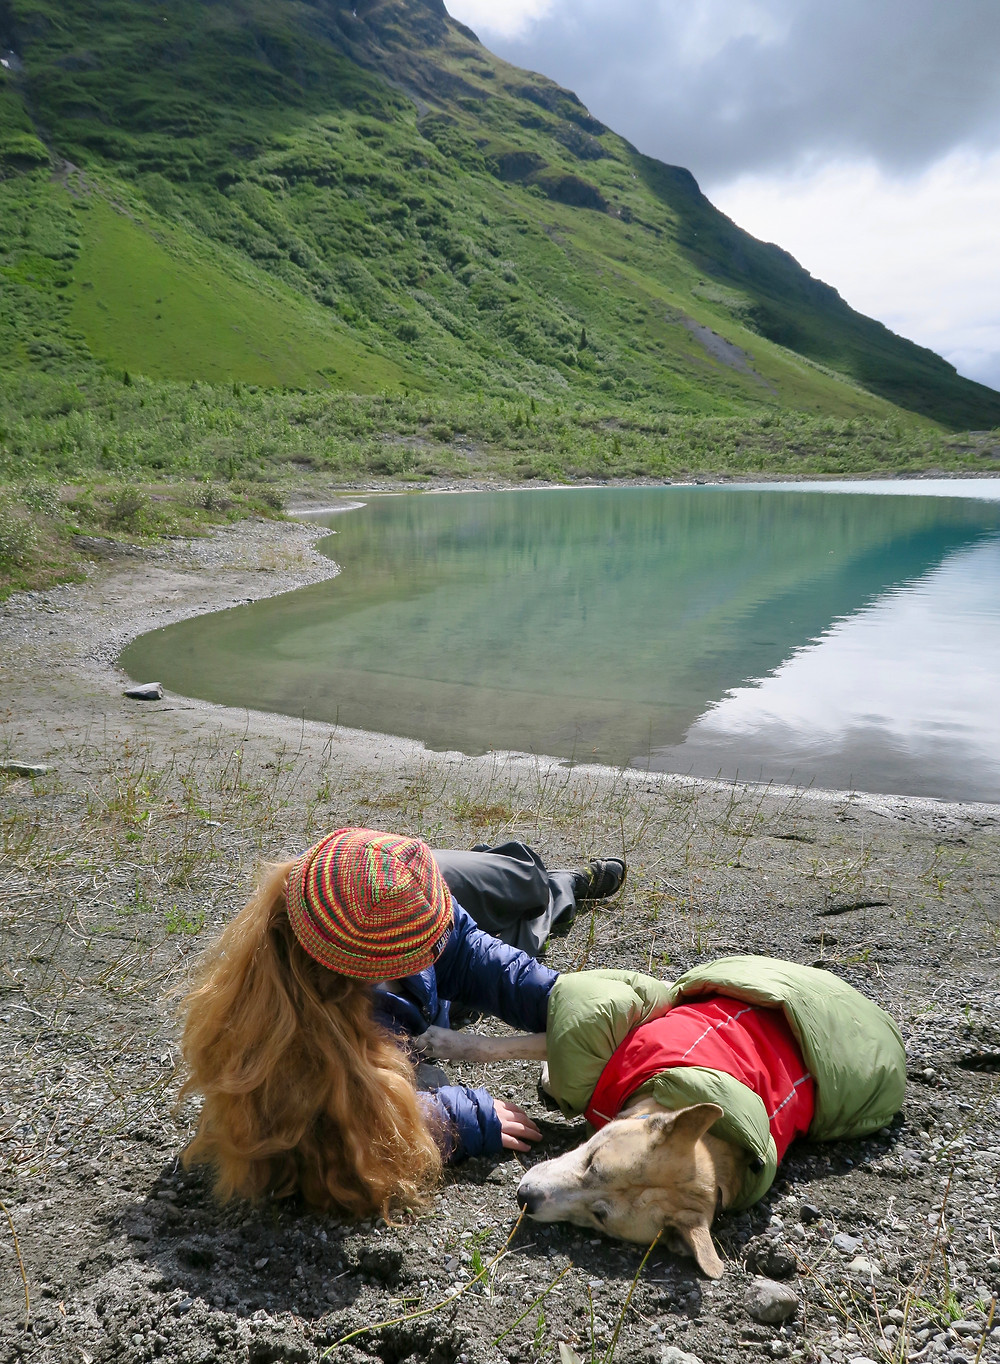 A young woman with long blond hair lays on the ground in sunshine by the edge of a lake petting a blond dog.